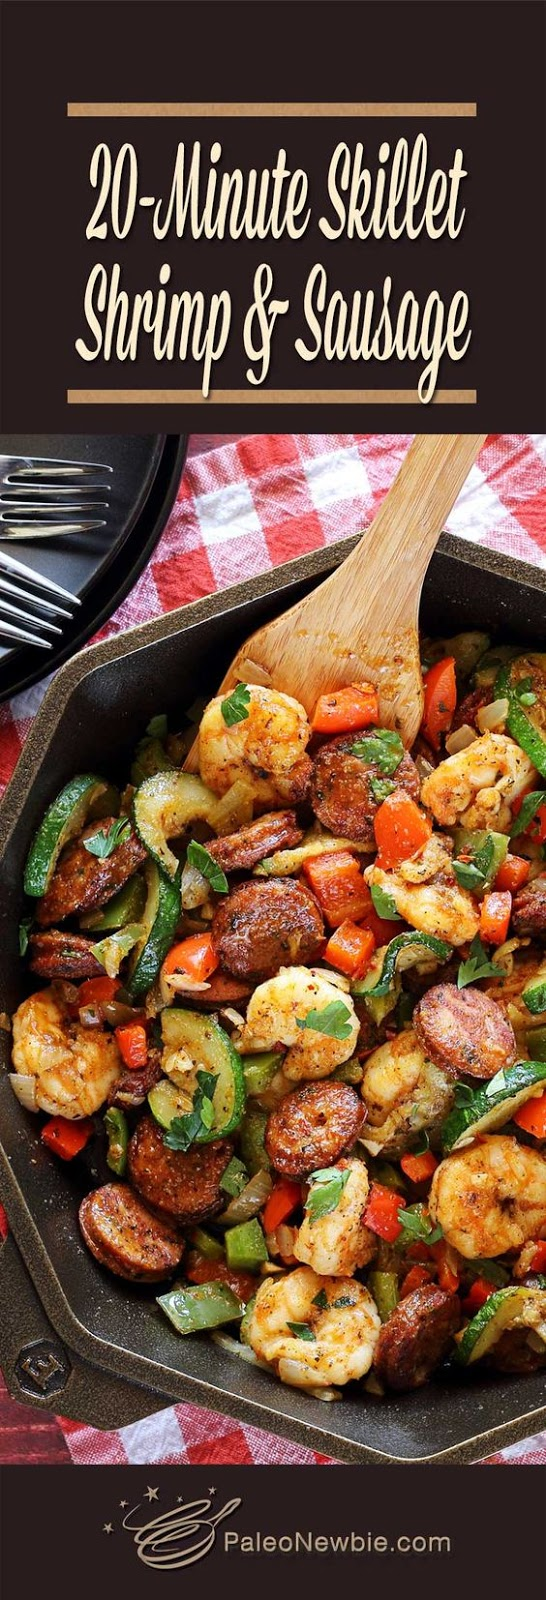 ★★★★☆ 7561 ratings | 20-Minute Shrimp & Sausage Skillet Paleo  #HEALTHYFOOD #EASYRECIPES #DINNER #LAUCH #DELICIOUS #EASY #HOLIDAYS #RECIPE #20Minute #Shrimp #Sausage #Skillet #Paleo